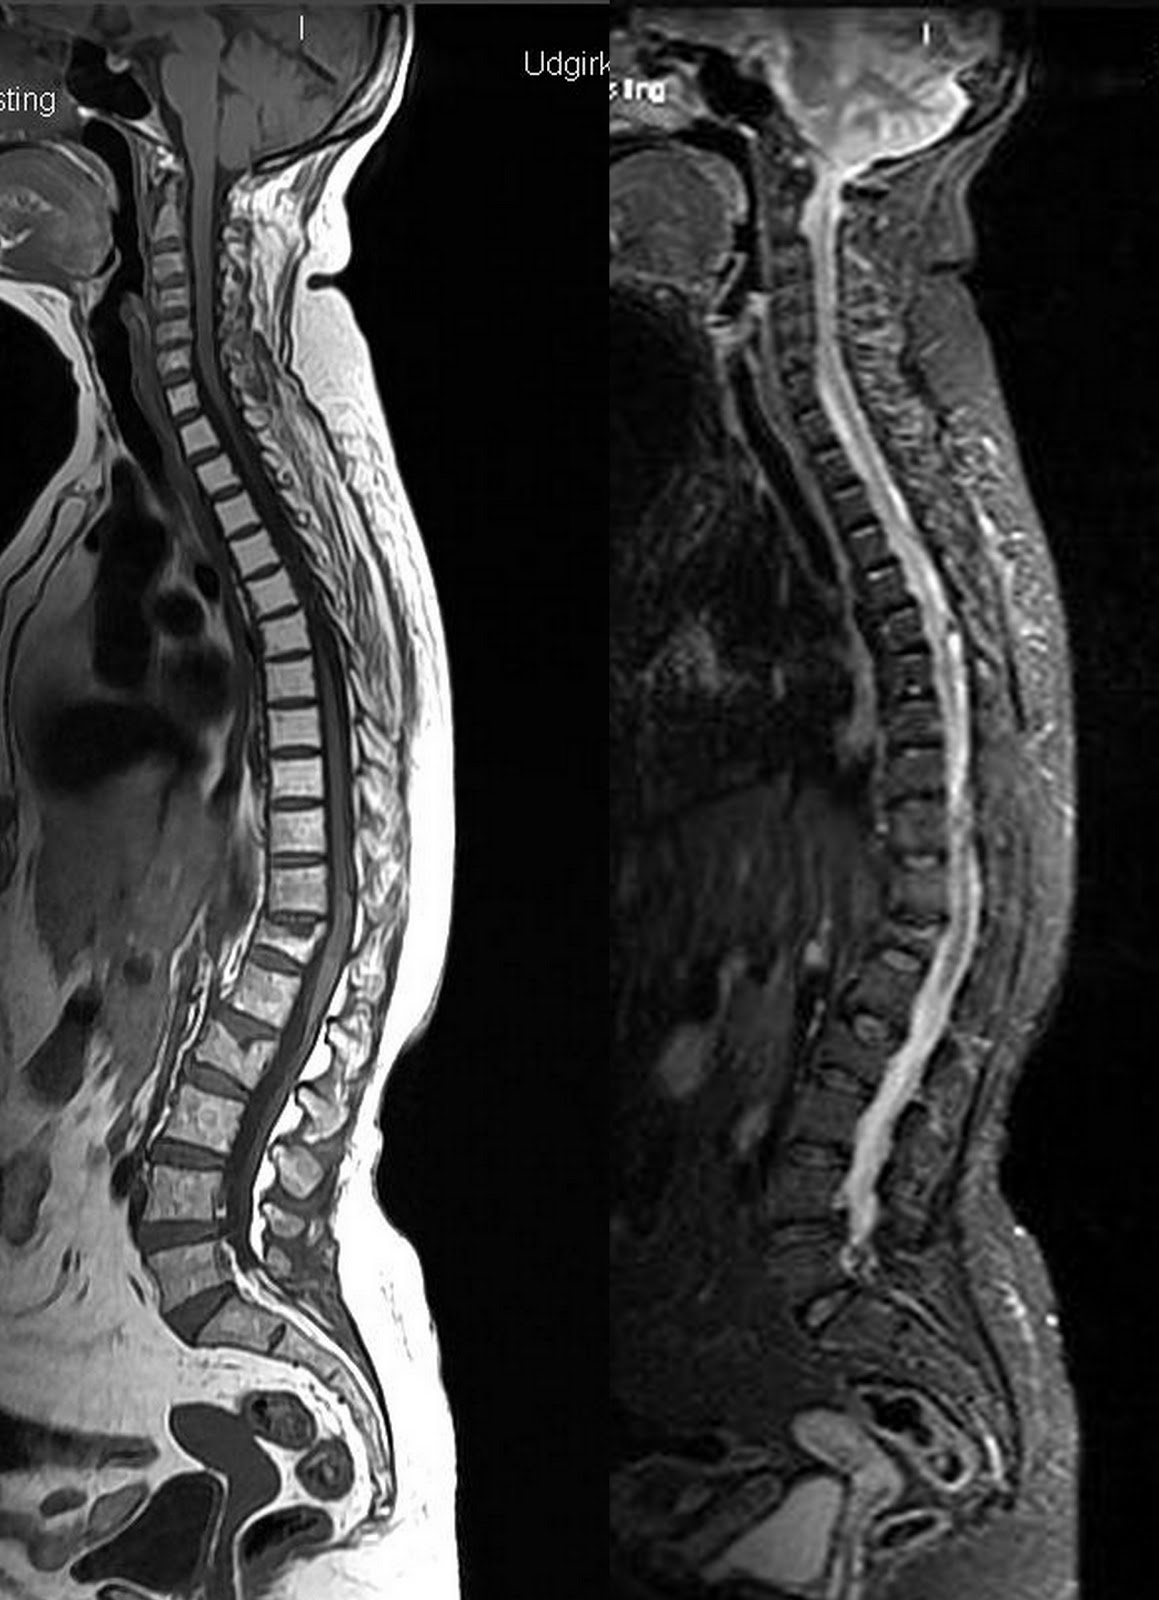 MRI Sagittal T1 and STIR screening of whole spine shows radiotherapy